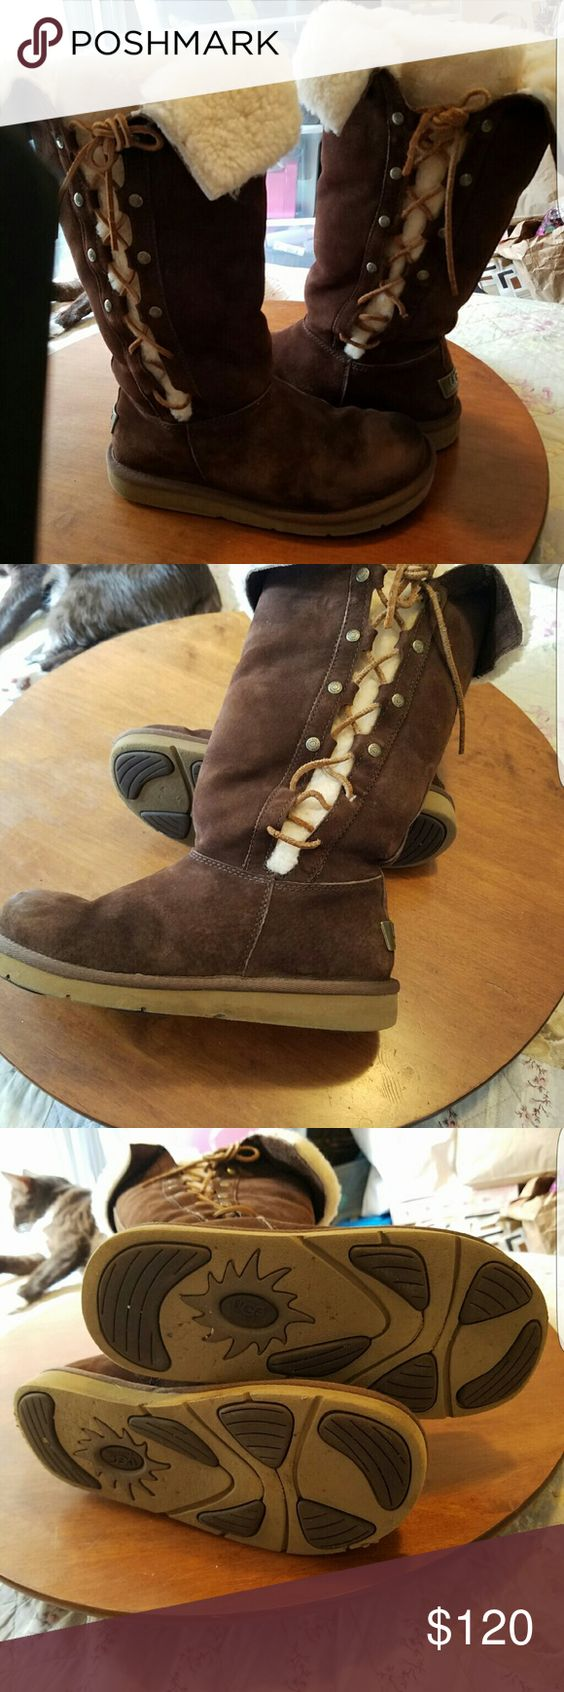 Authentic uggs womens size 7●●●FLASH SALE 100$●●●● Excellent used condition clean UGG Shoes Winter & Rain Boots